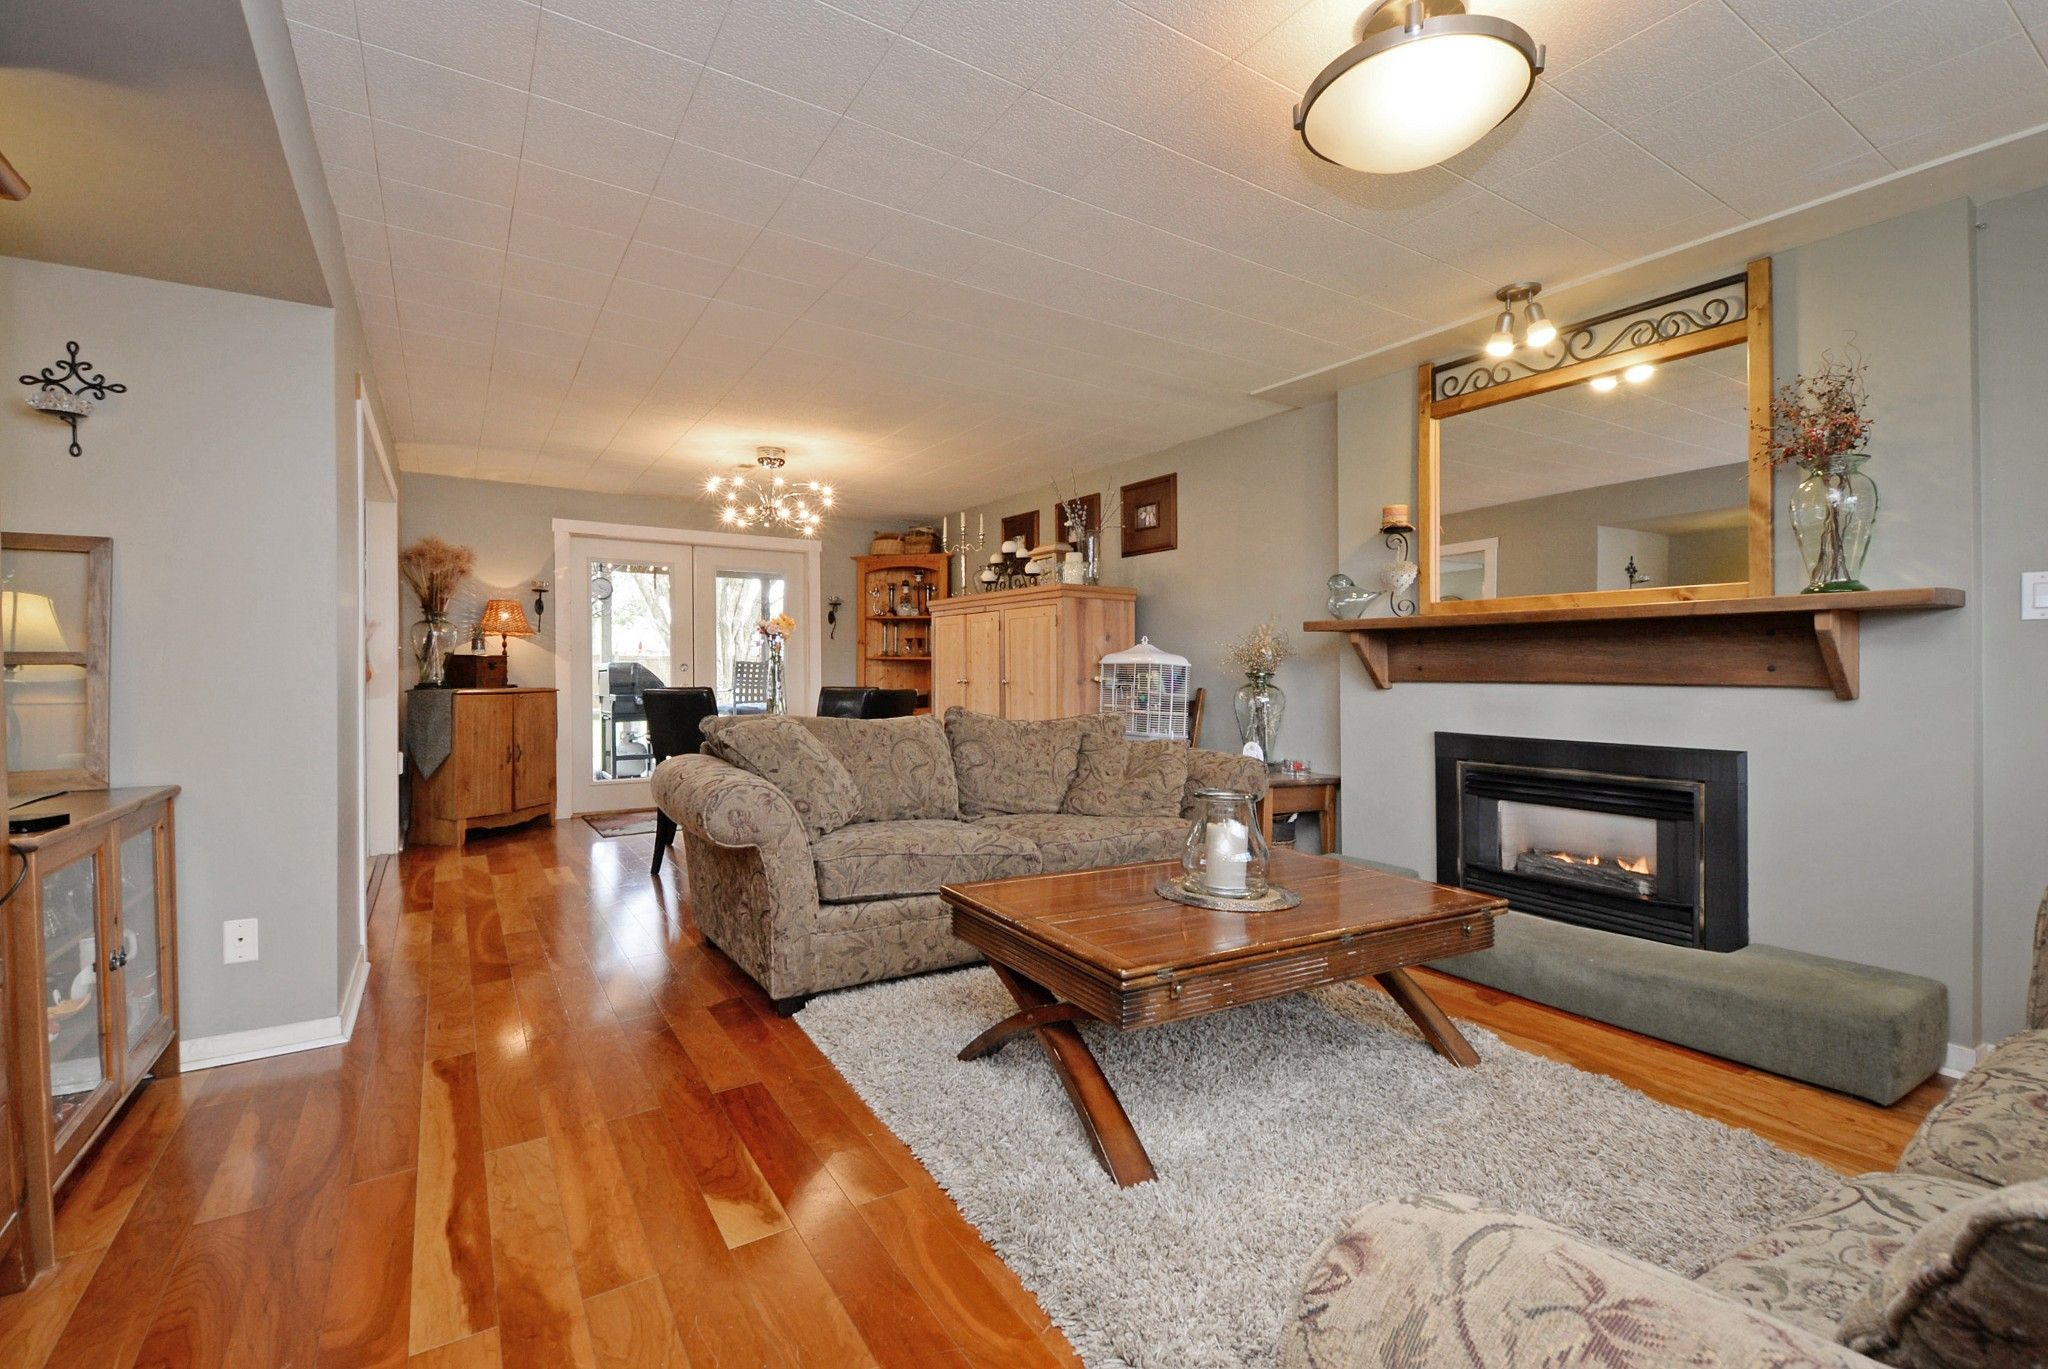 Photo 12: Photos: 5166 44 Avenue in Delta: Ladner Elementary House for sale (Ladner)  : MLS®# R2239309